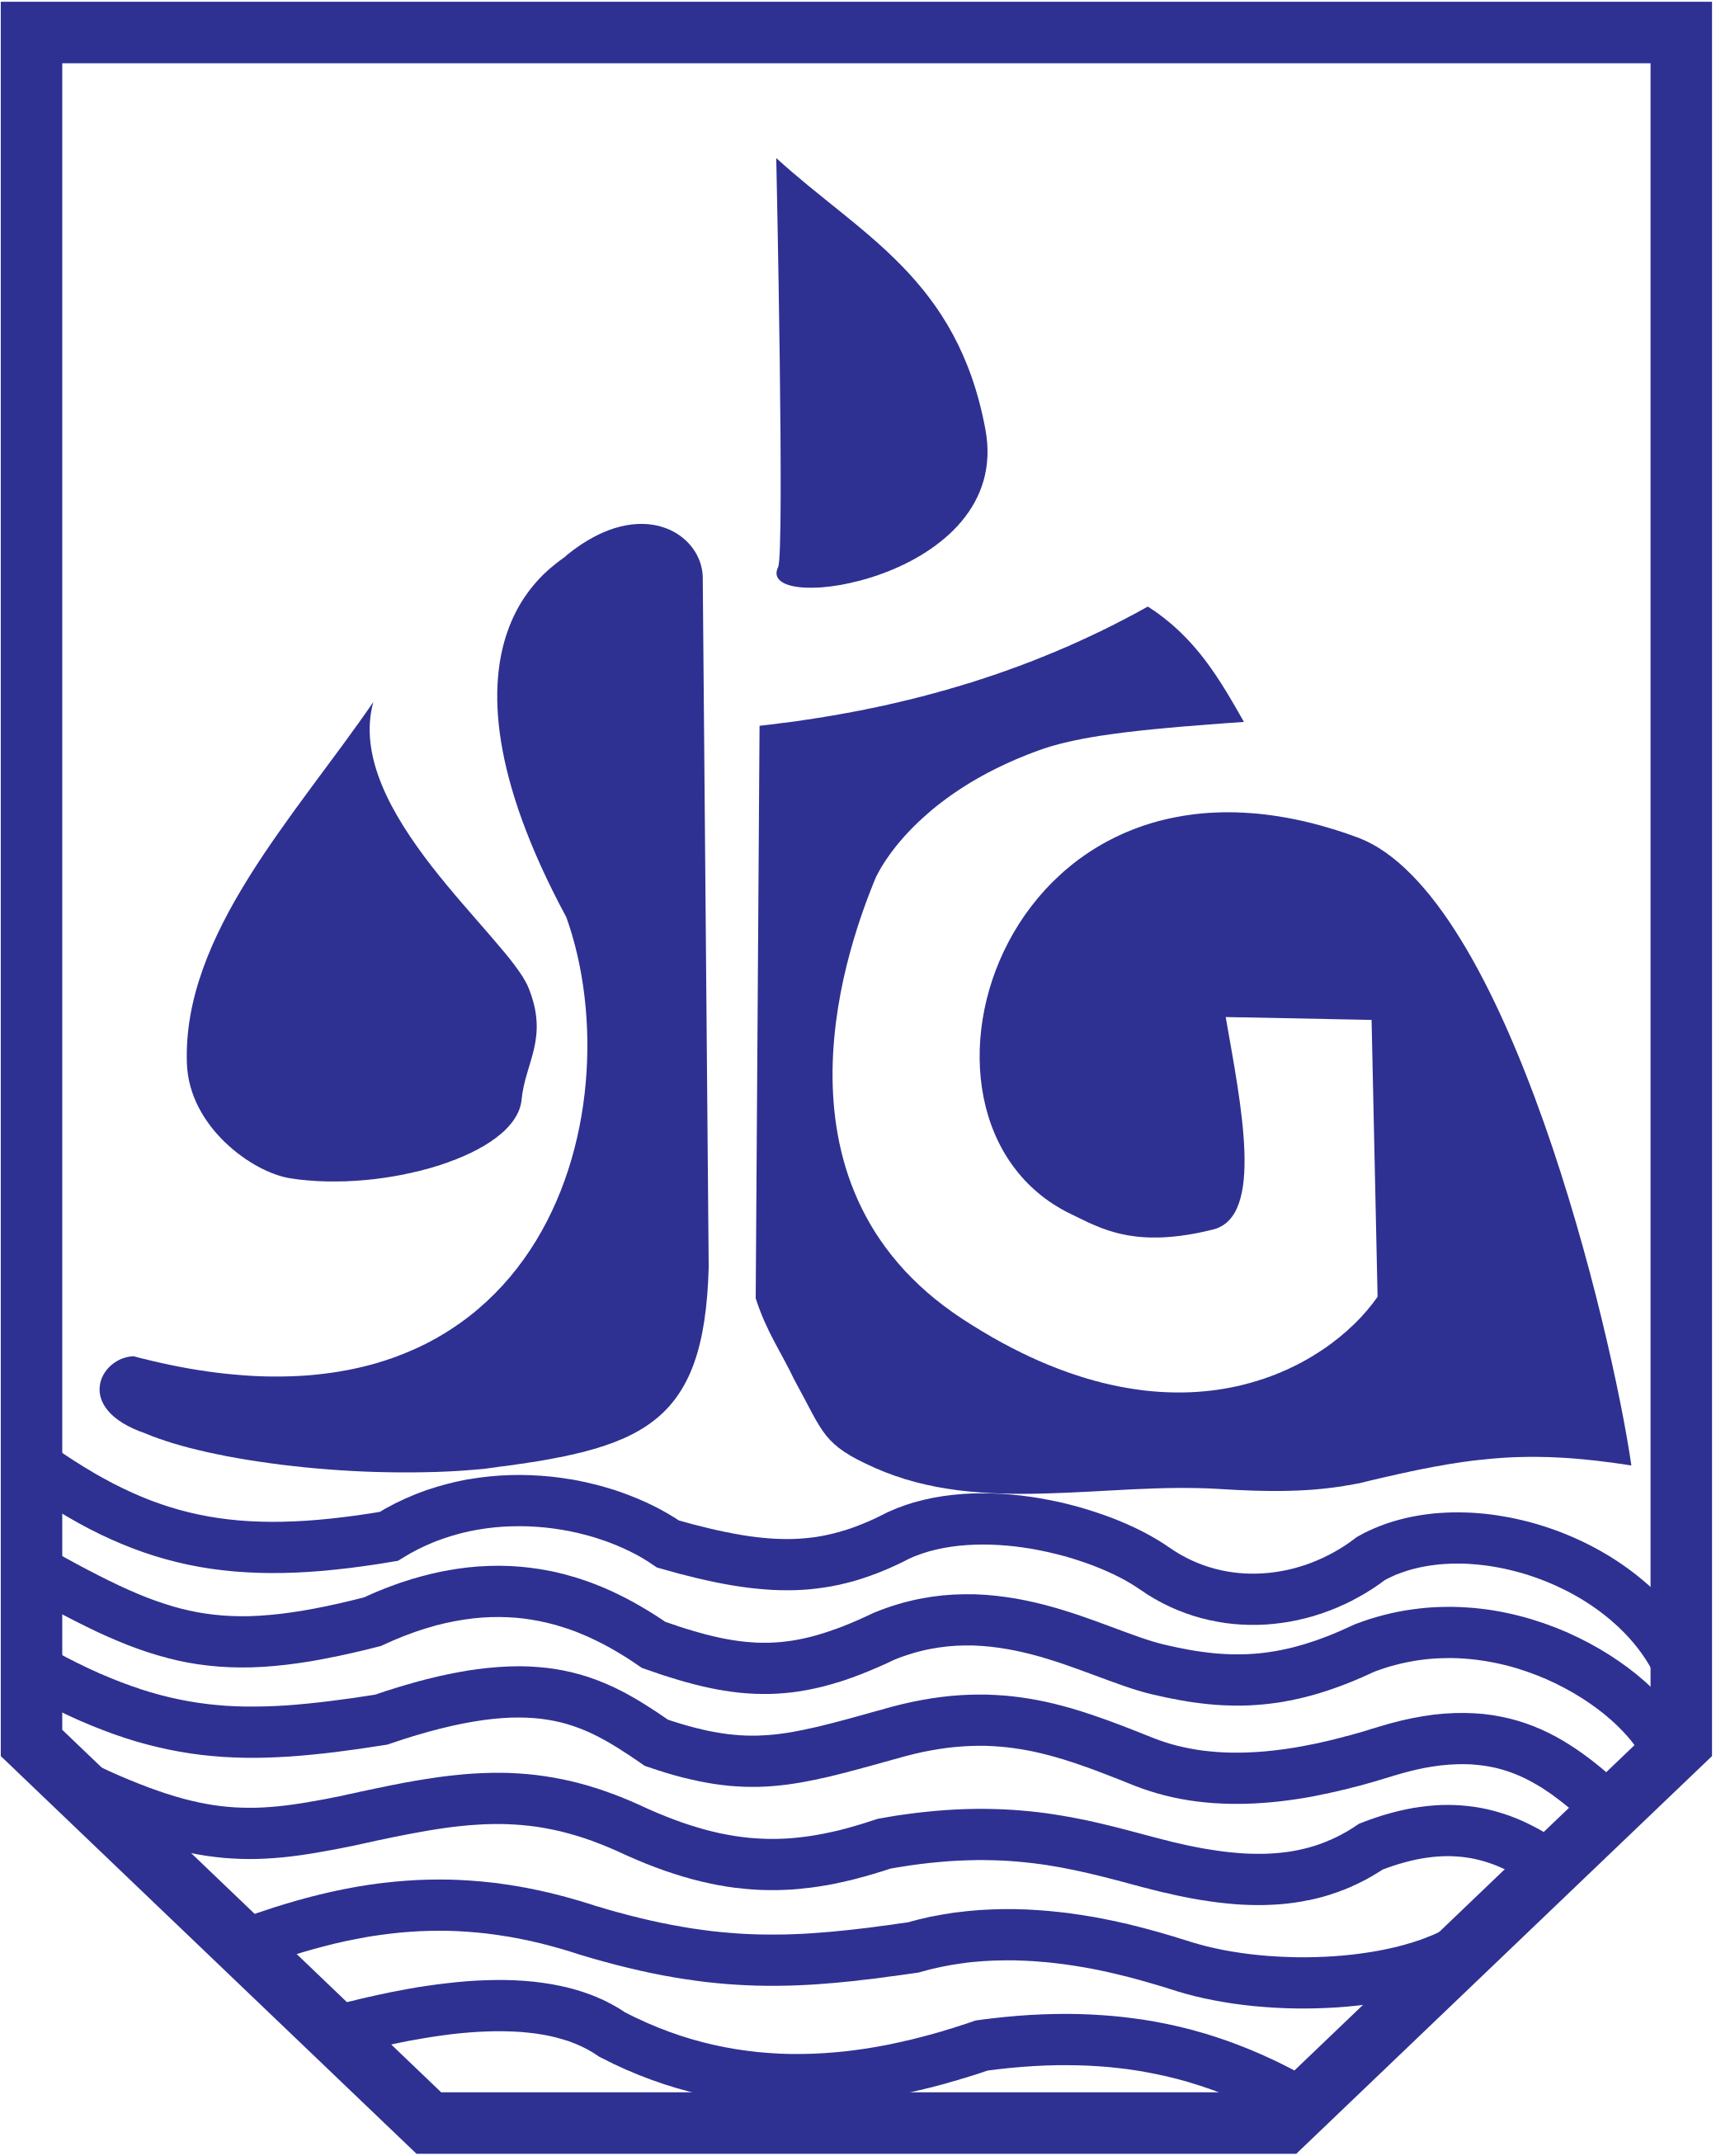 affiliate organisations n society of exploration the society of petroleum geophysicists was born on 15 1992 when about 30 geophysicists met and resolved to form an association for improved